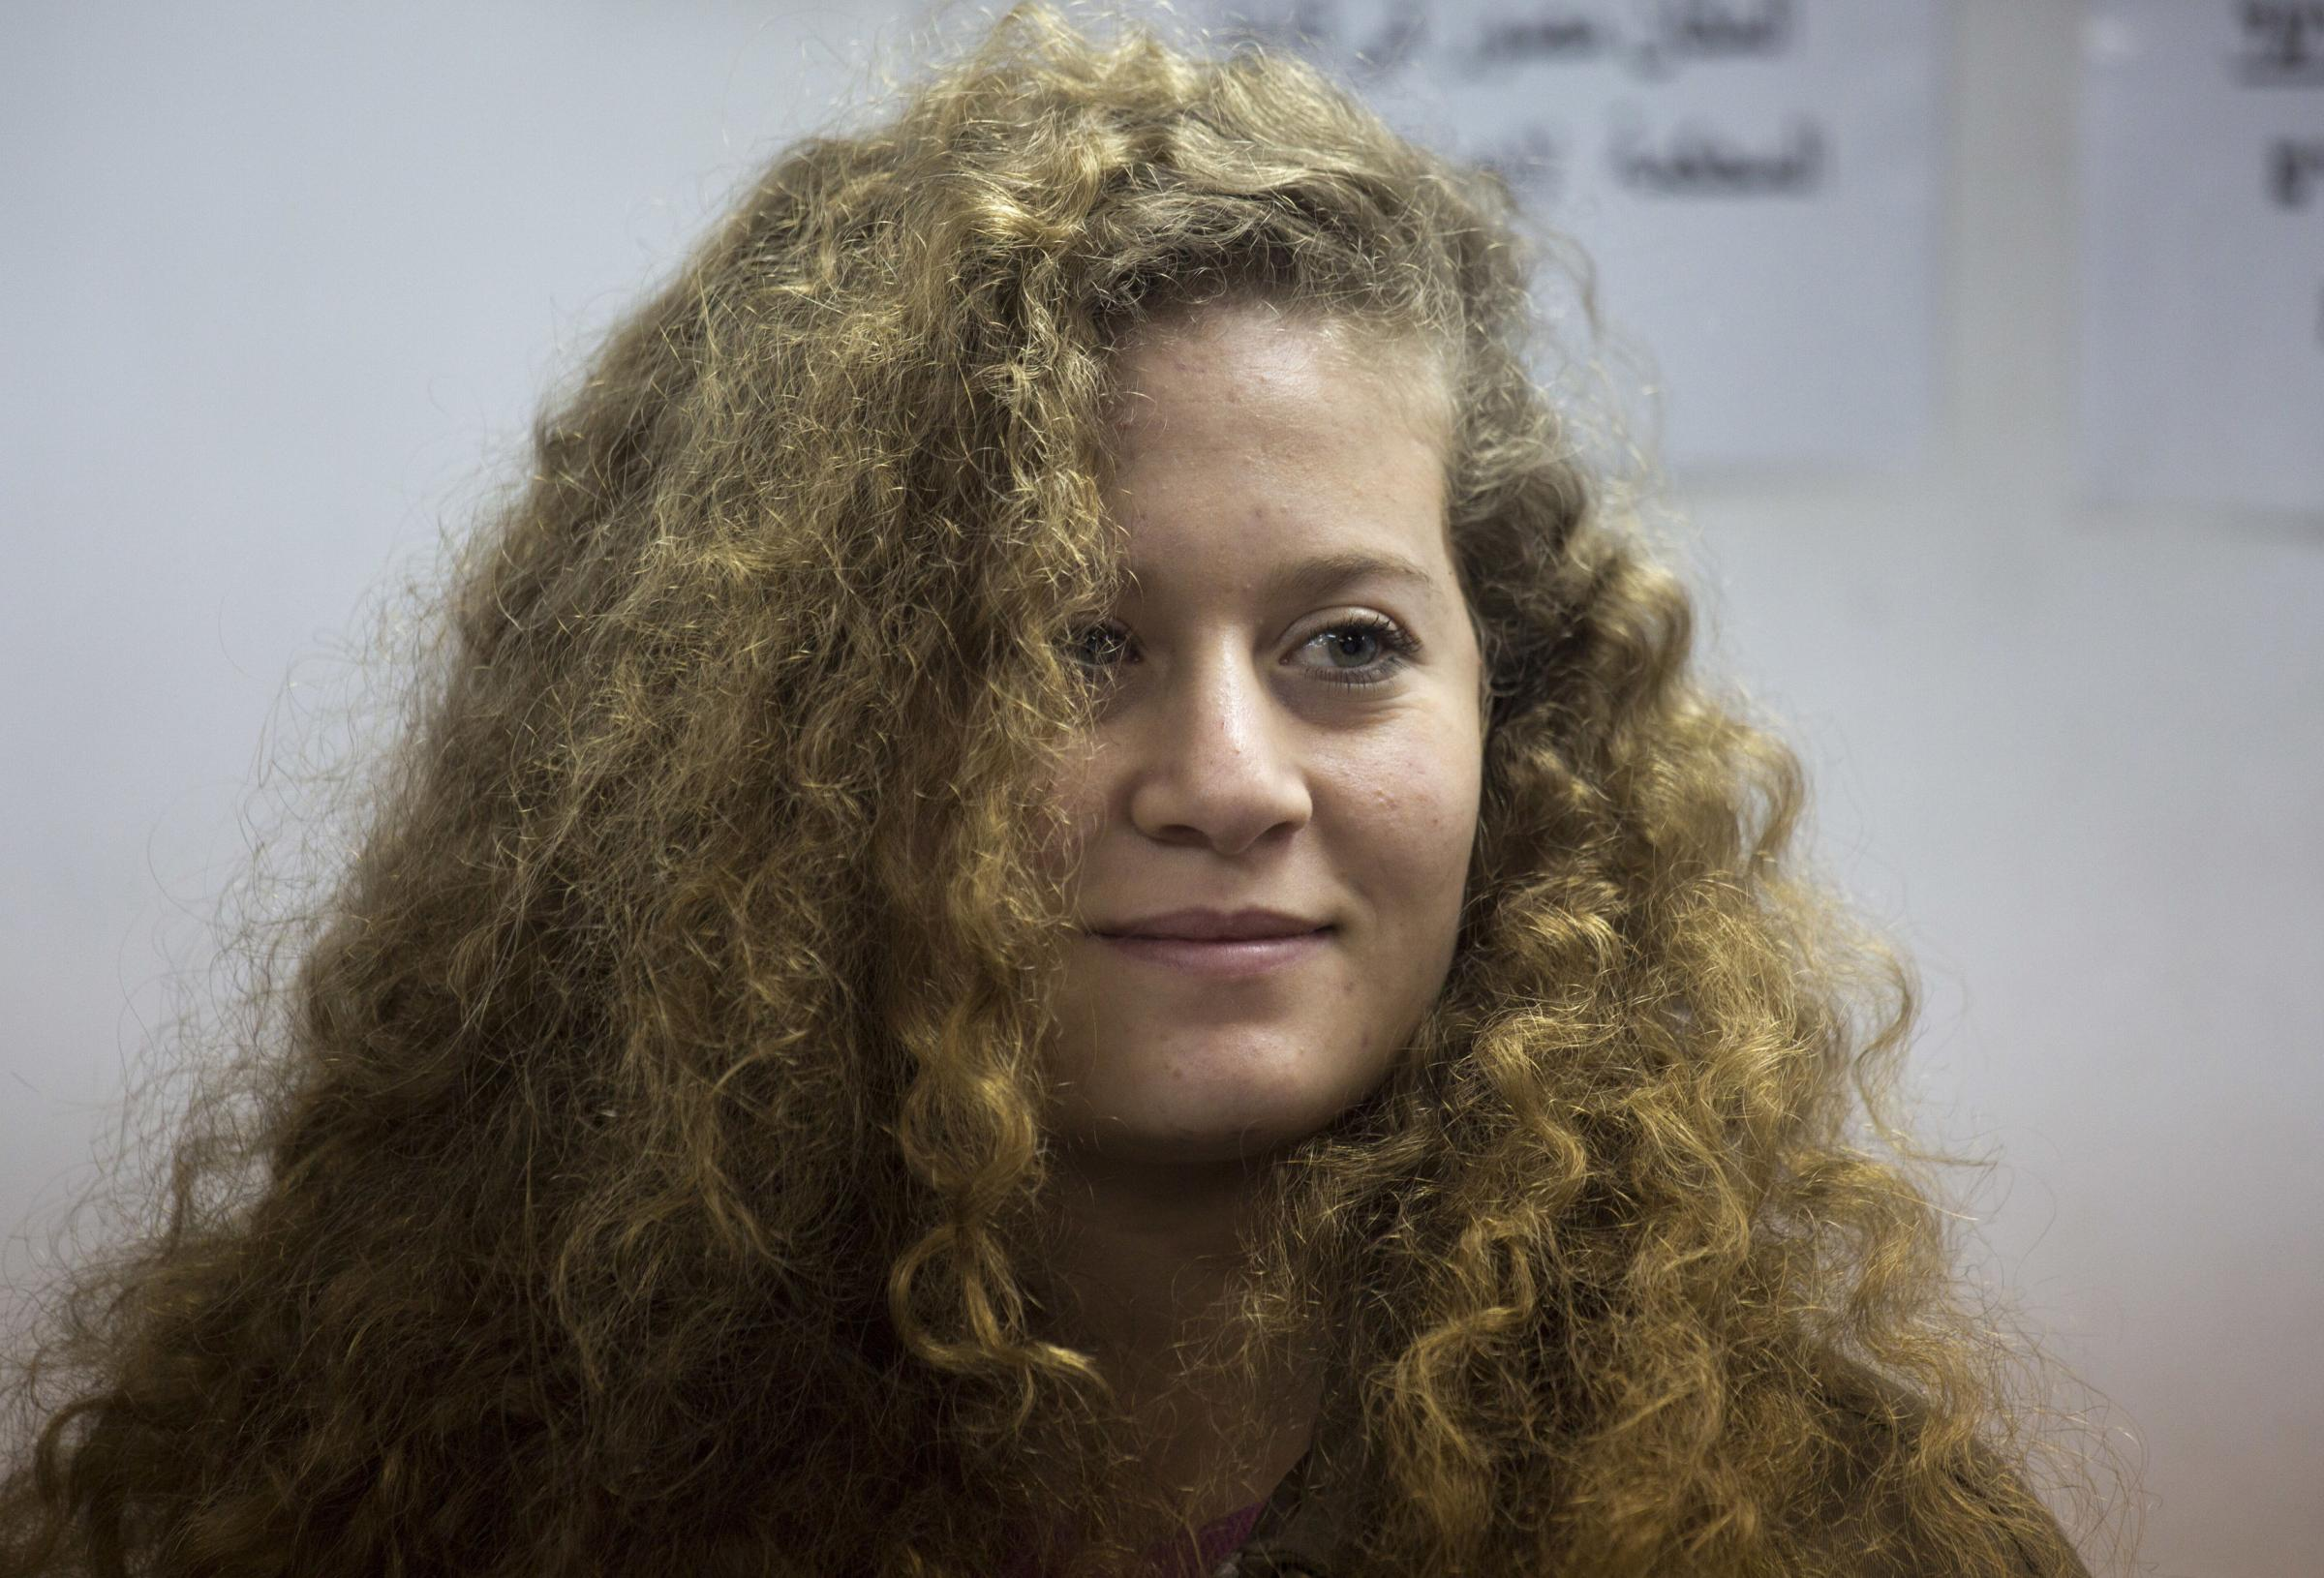 Ahed Tamimi has become an icon of protests against Israel